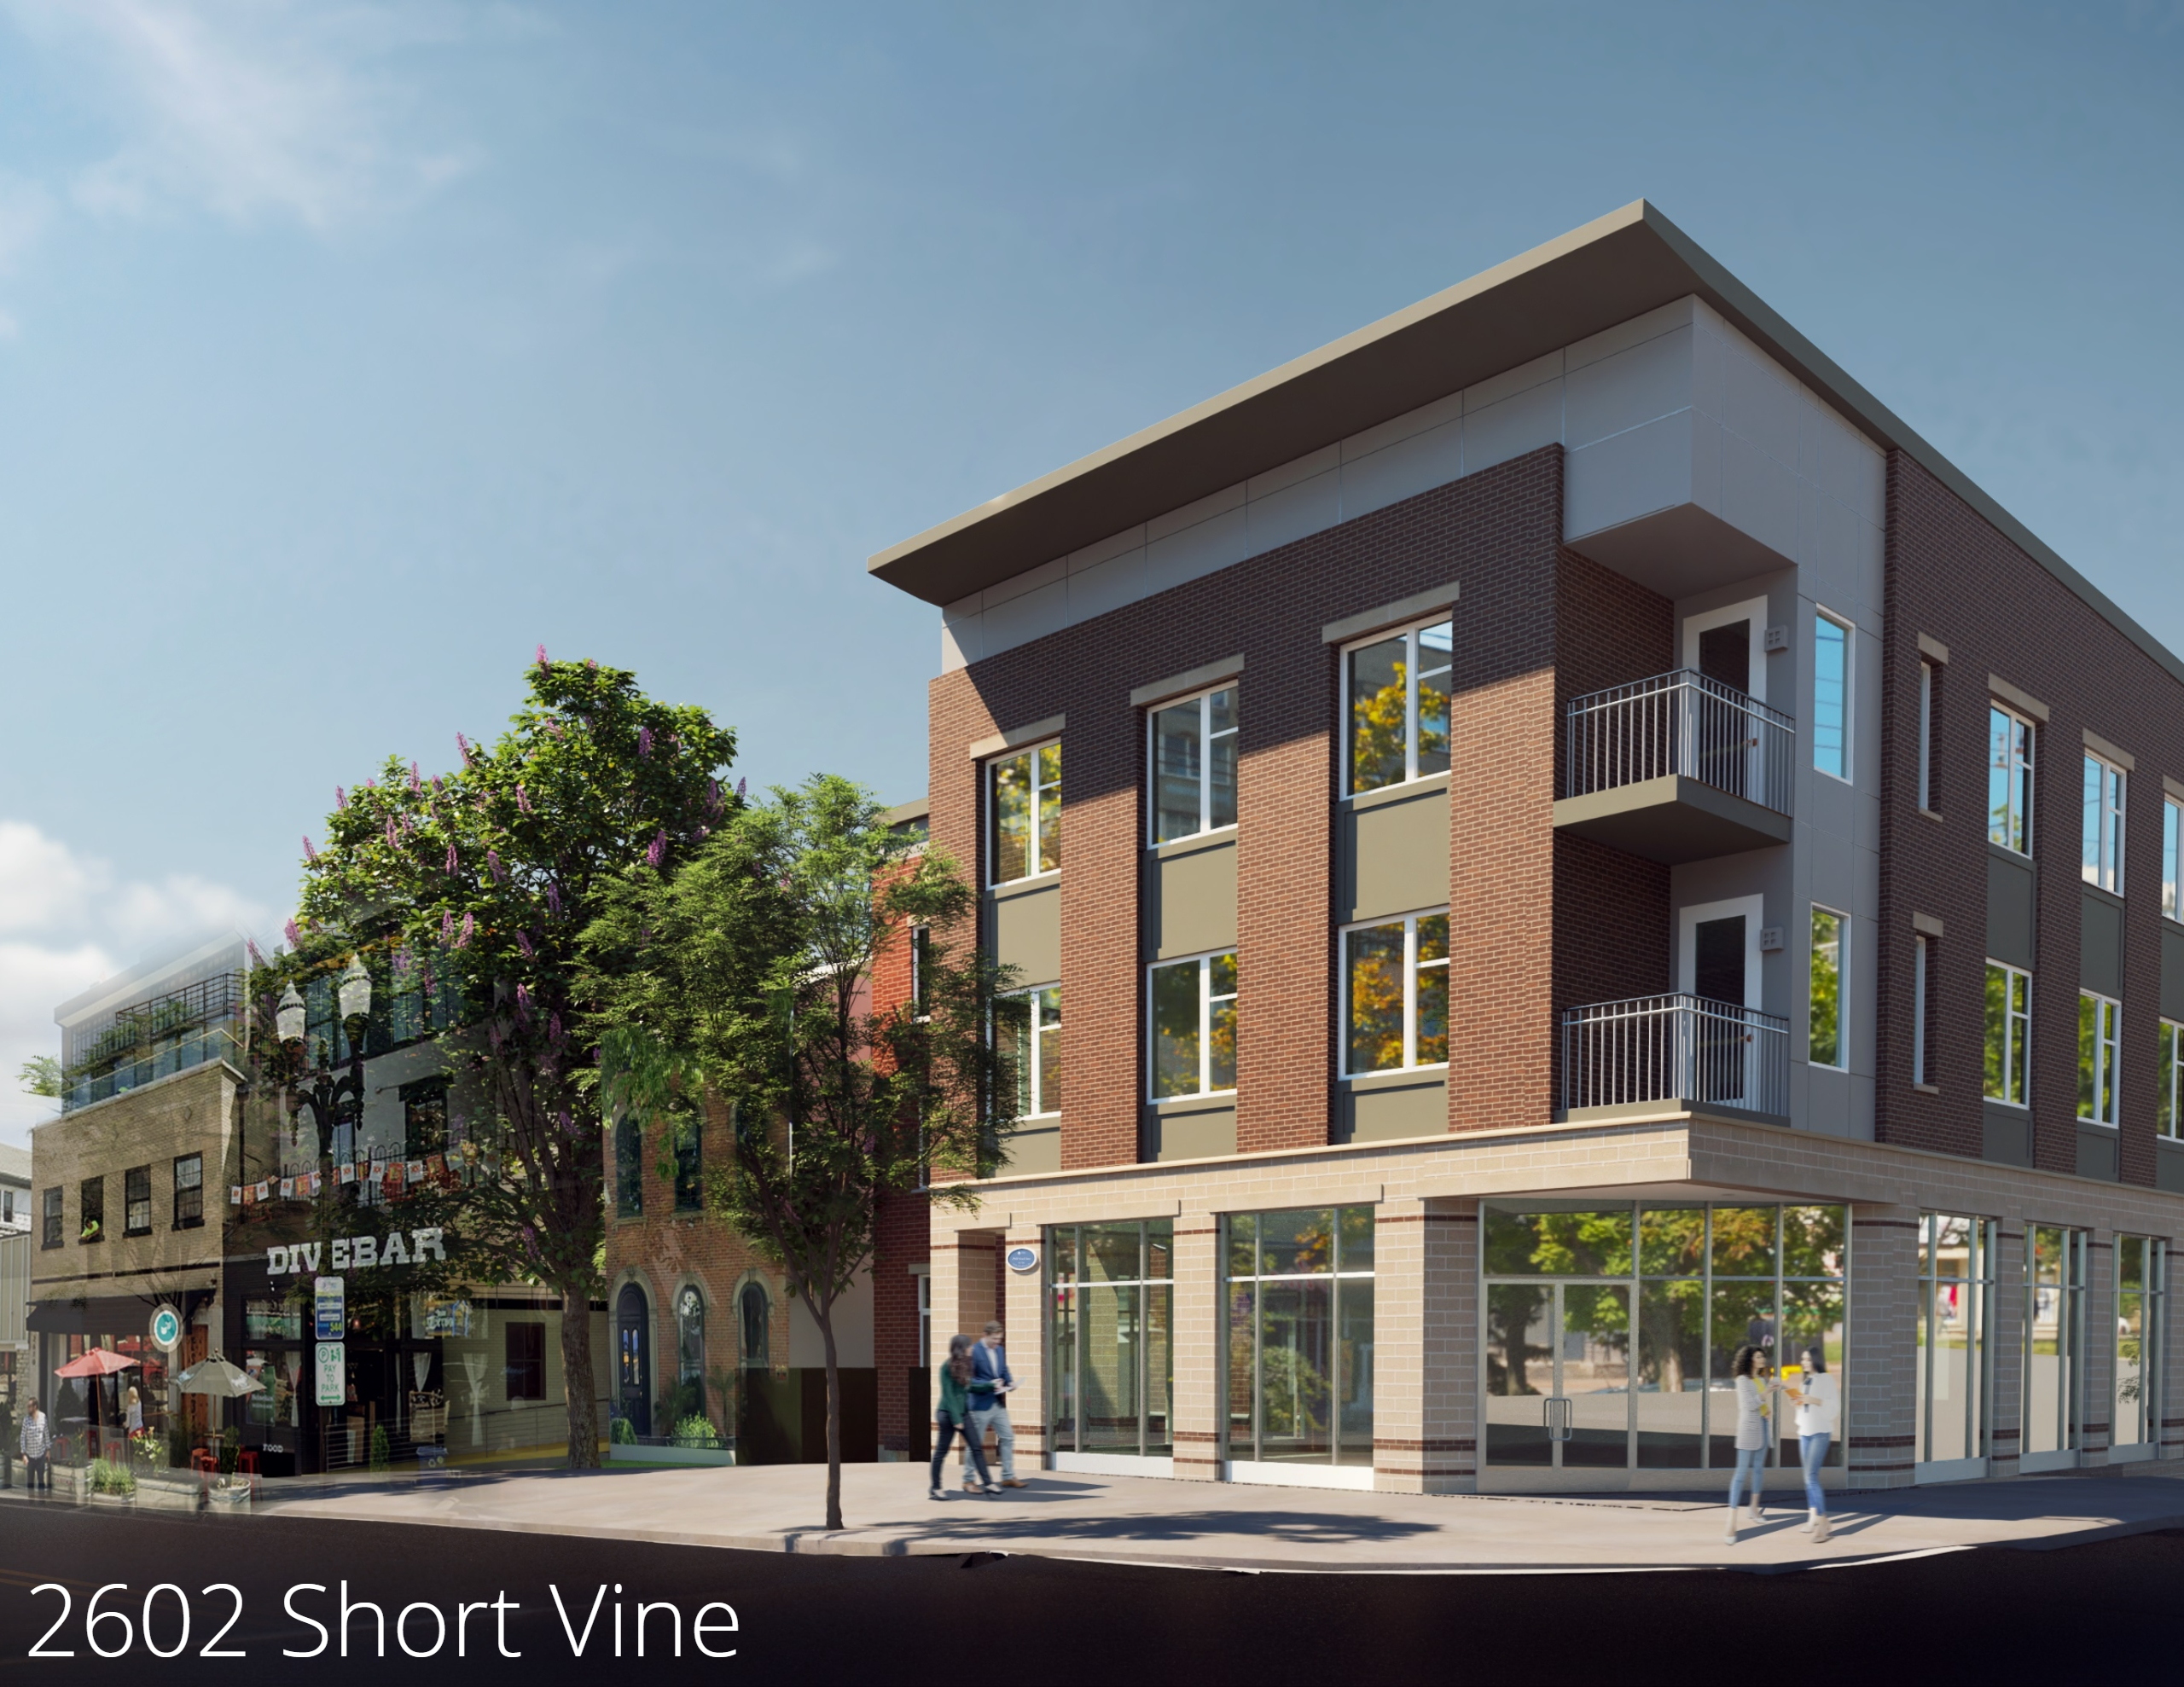 2602 Short Vine apartments